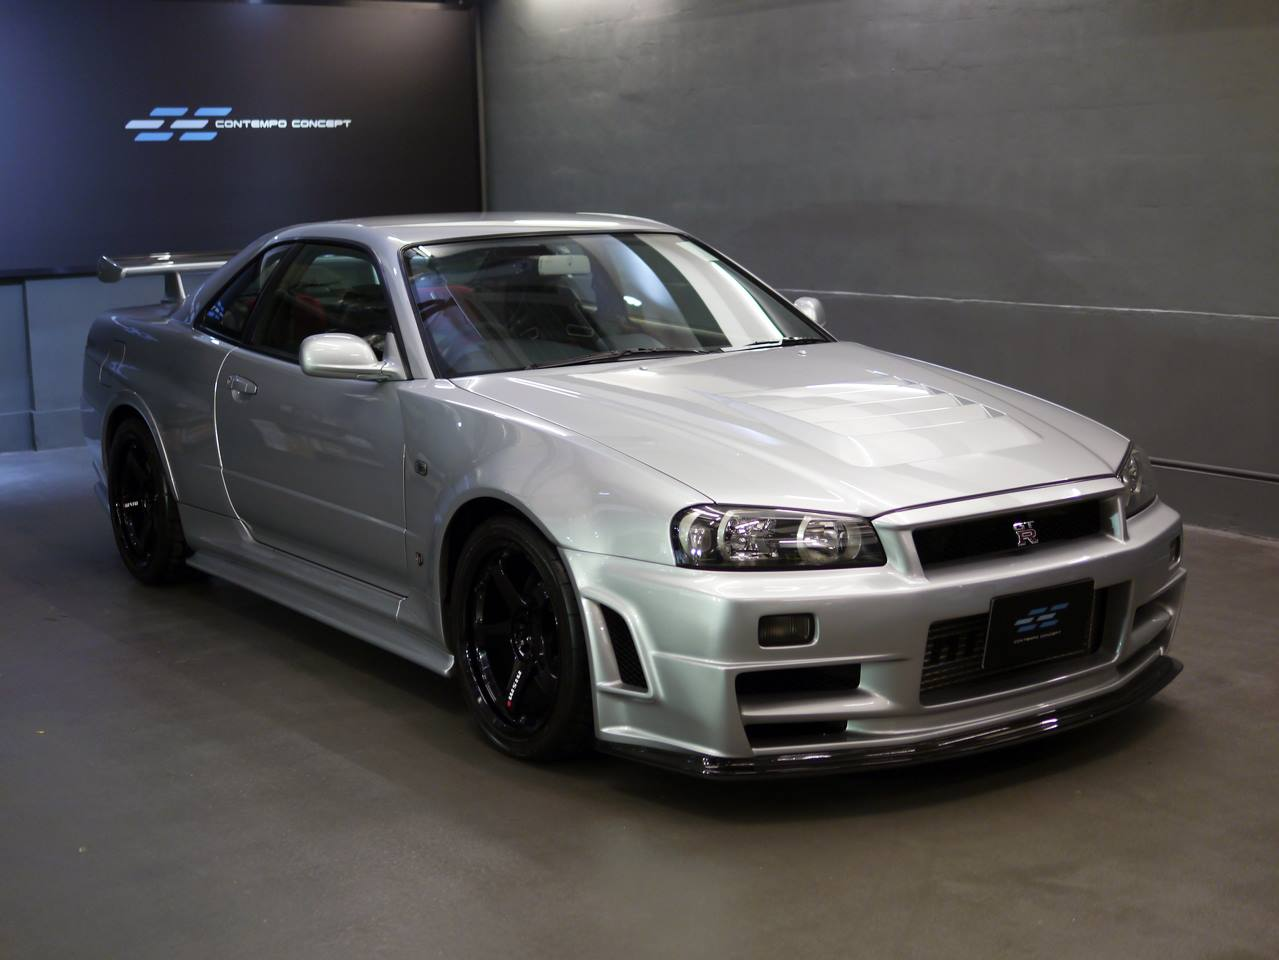 rare nissan skyline gt r nismo z tune for sale at 510 000. Black Bedroom Furniture Sets. Home Design Ideas